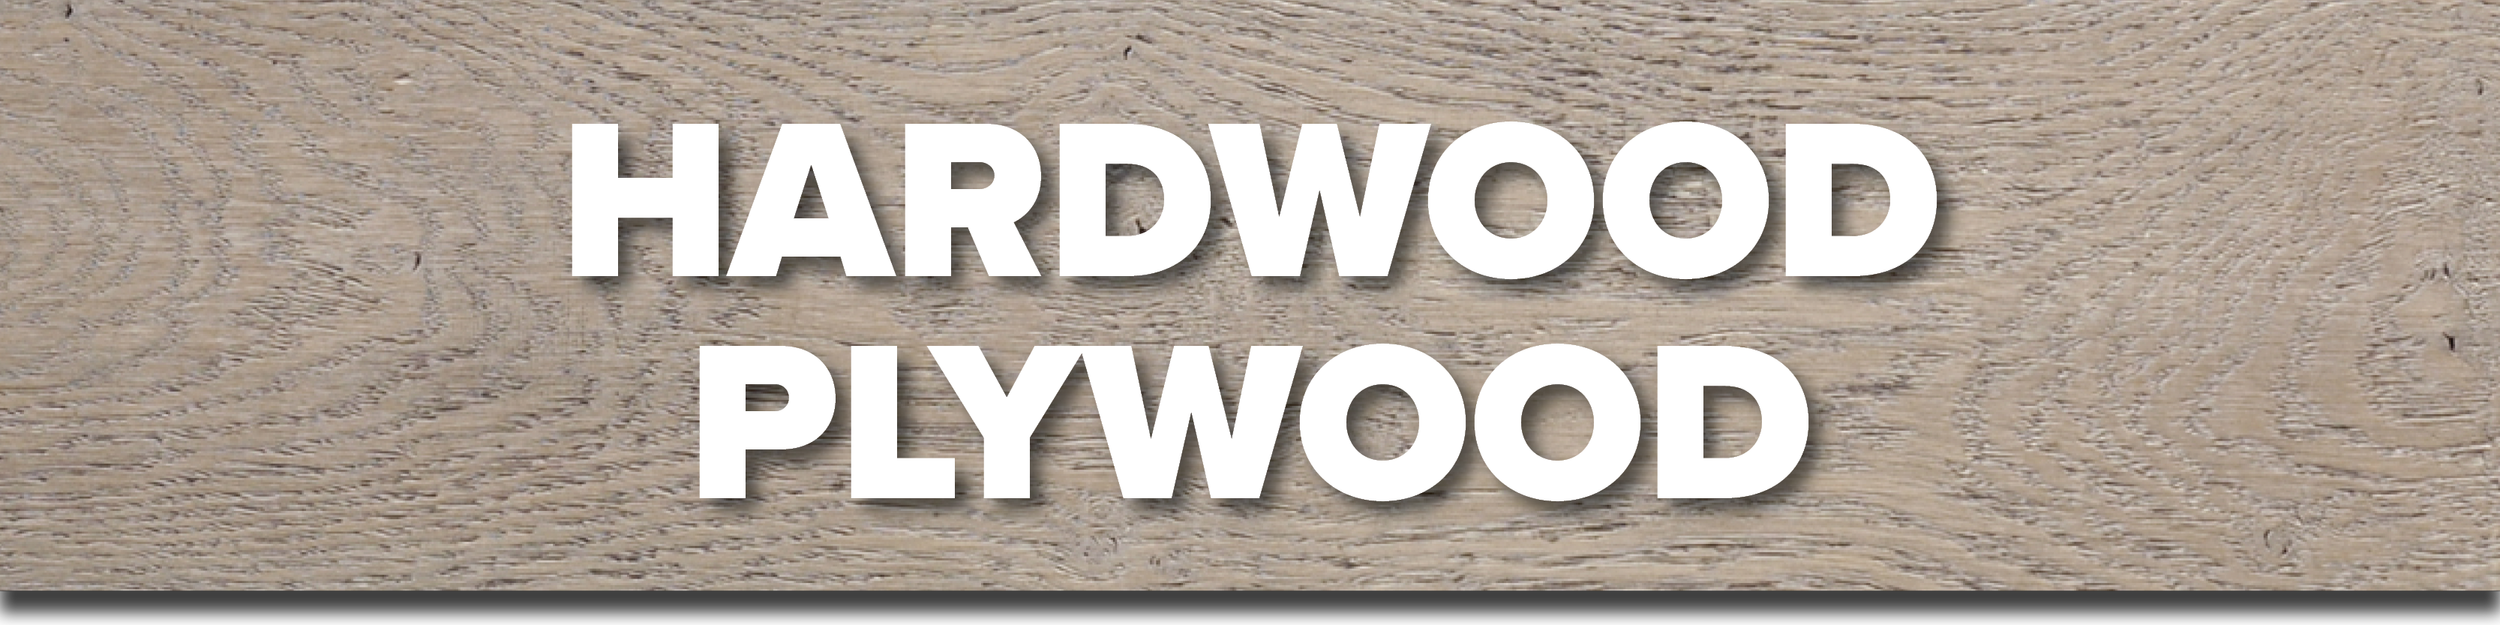 Hardwood Plywood.png